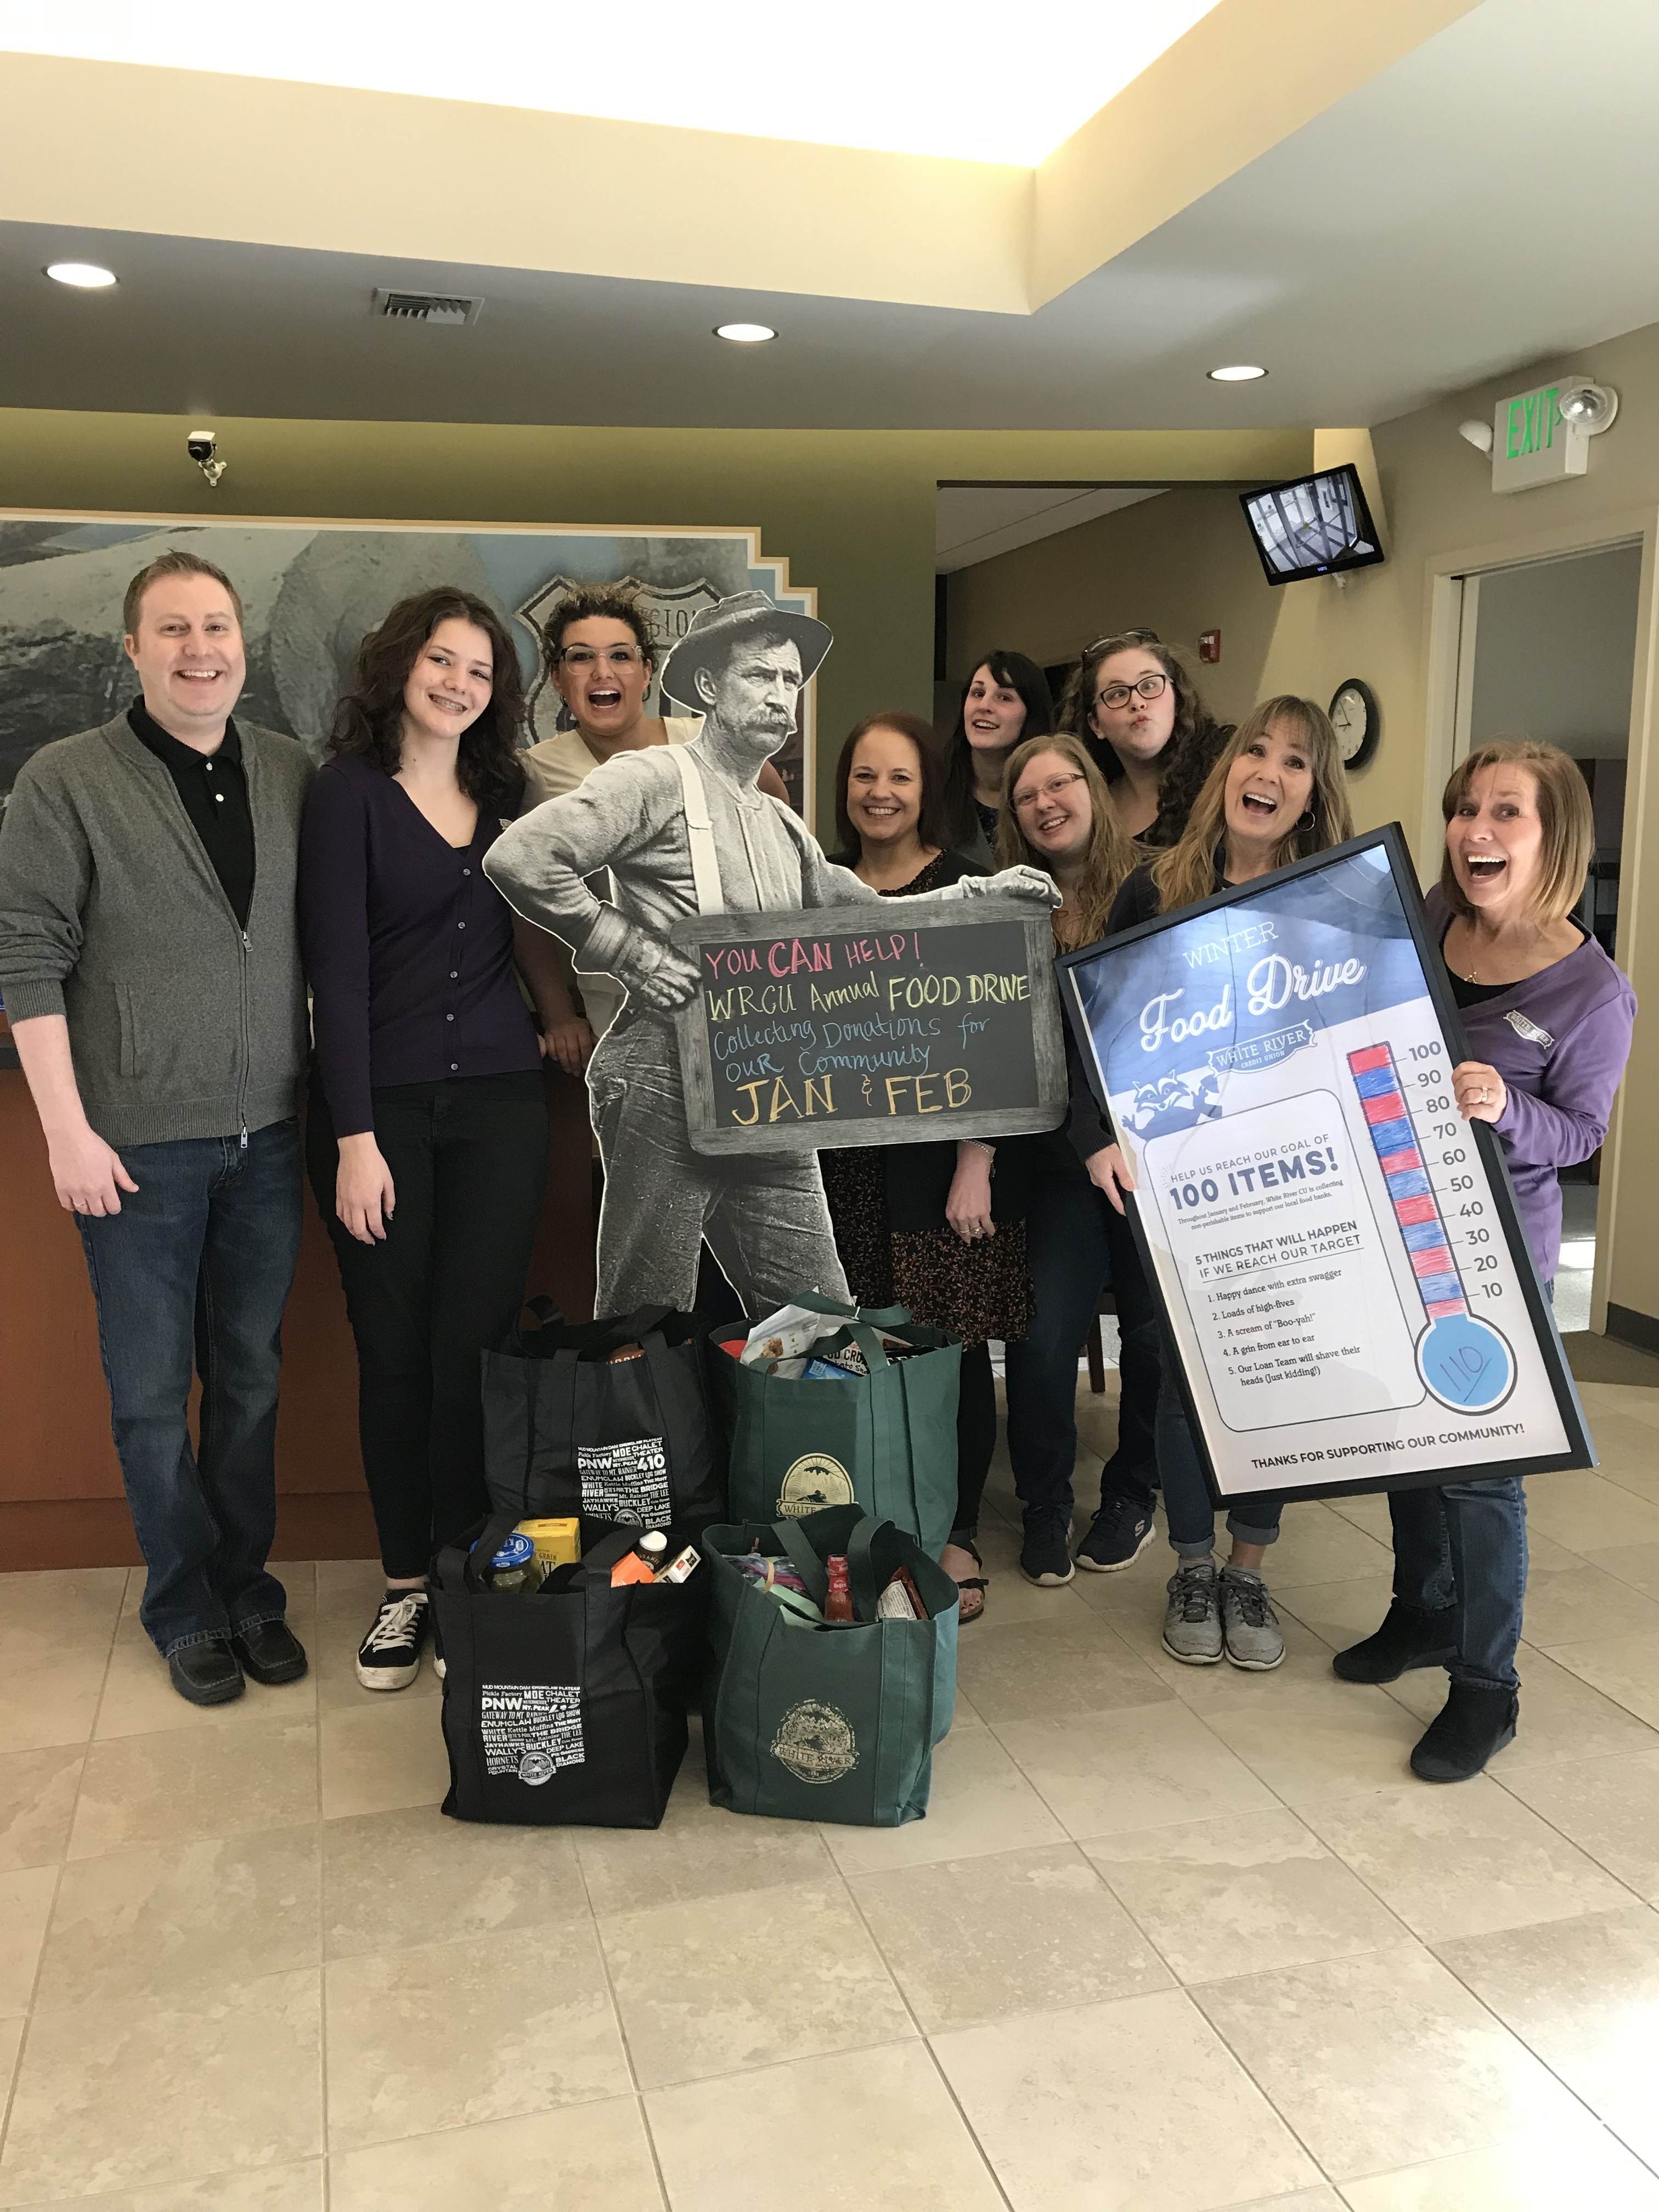 "9 WRCU employees smiling around donated food. One is holding a poster with a count of how many items they have received. A sign can be seen reading ""You can help! WRCU Annual Food Drive collecting donations for our community Jan & Feb"